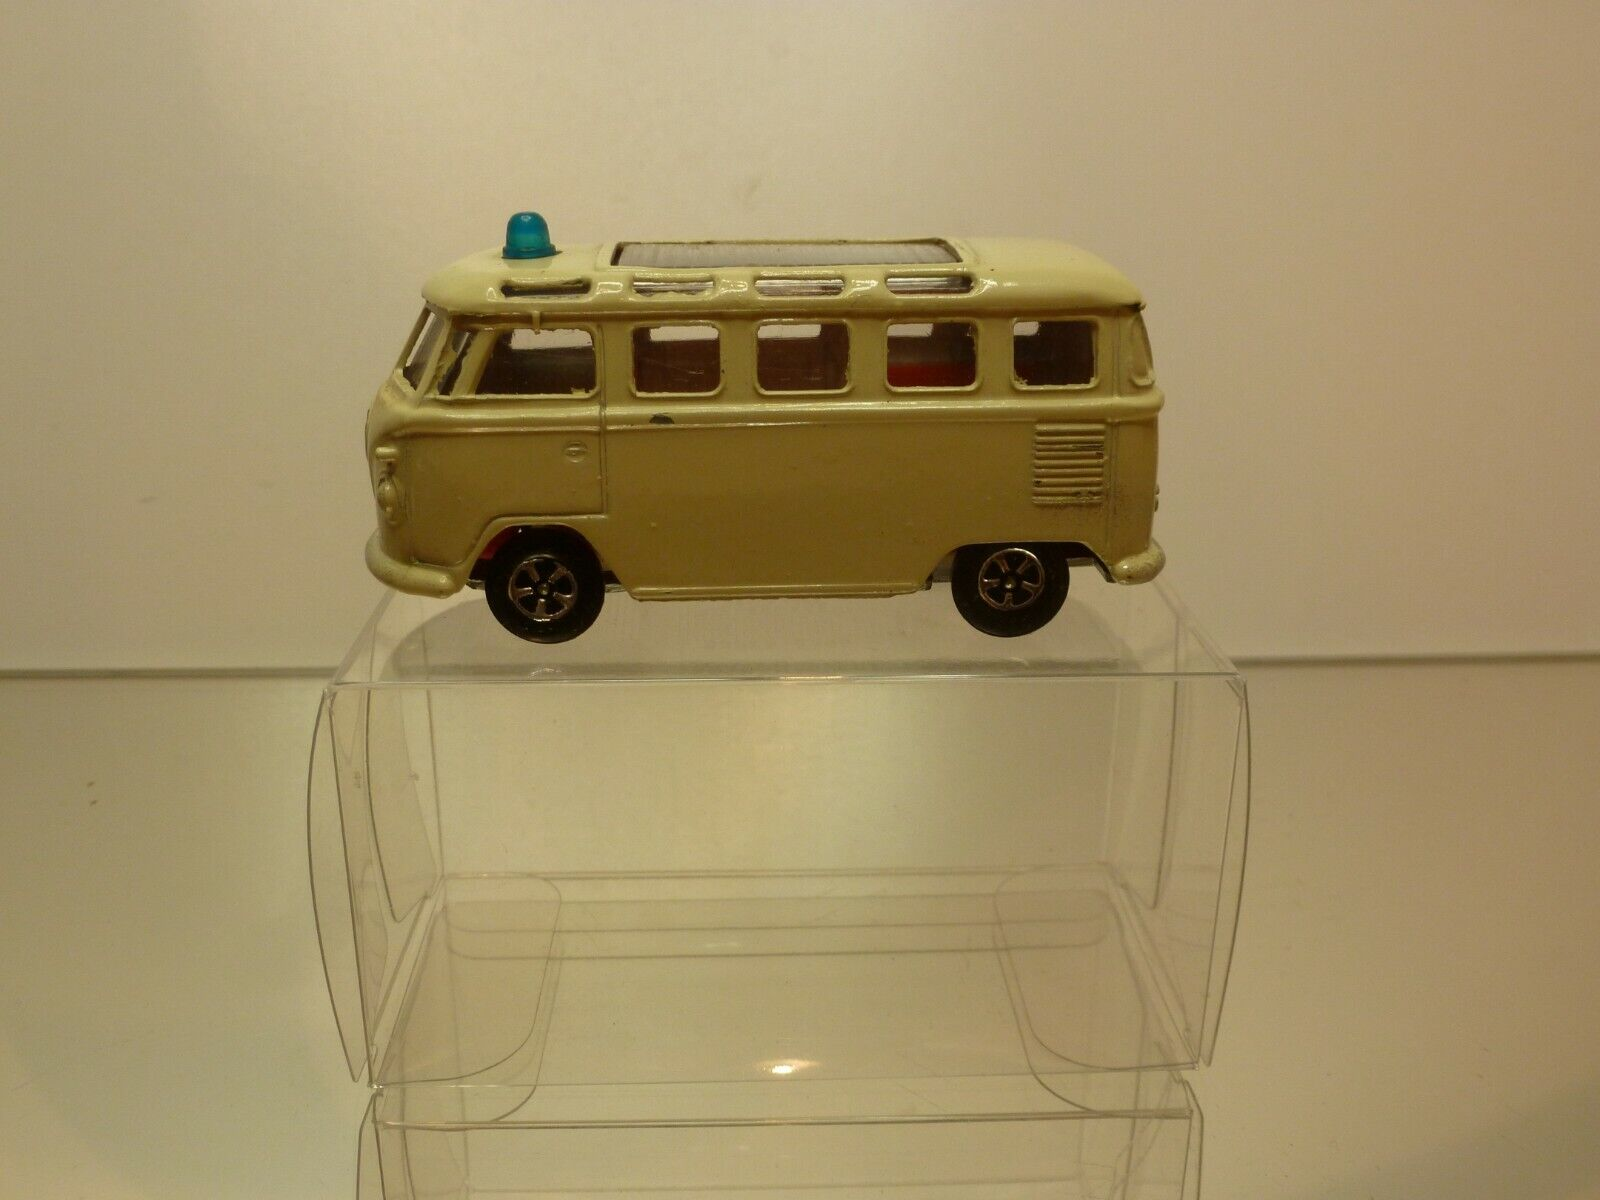 IMPY LONE STAR 20 VW VOLKSWAGEN T1 BUS  AMBULANCE - 23 WINDOWS - VERY GOOD IN BOX  design unique